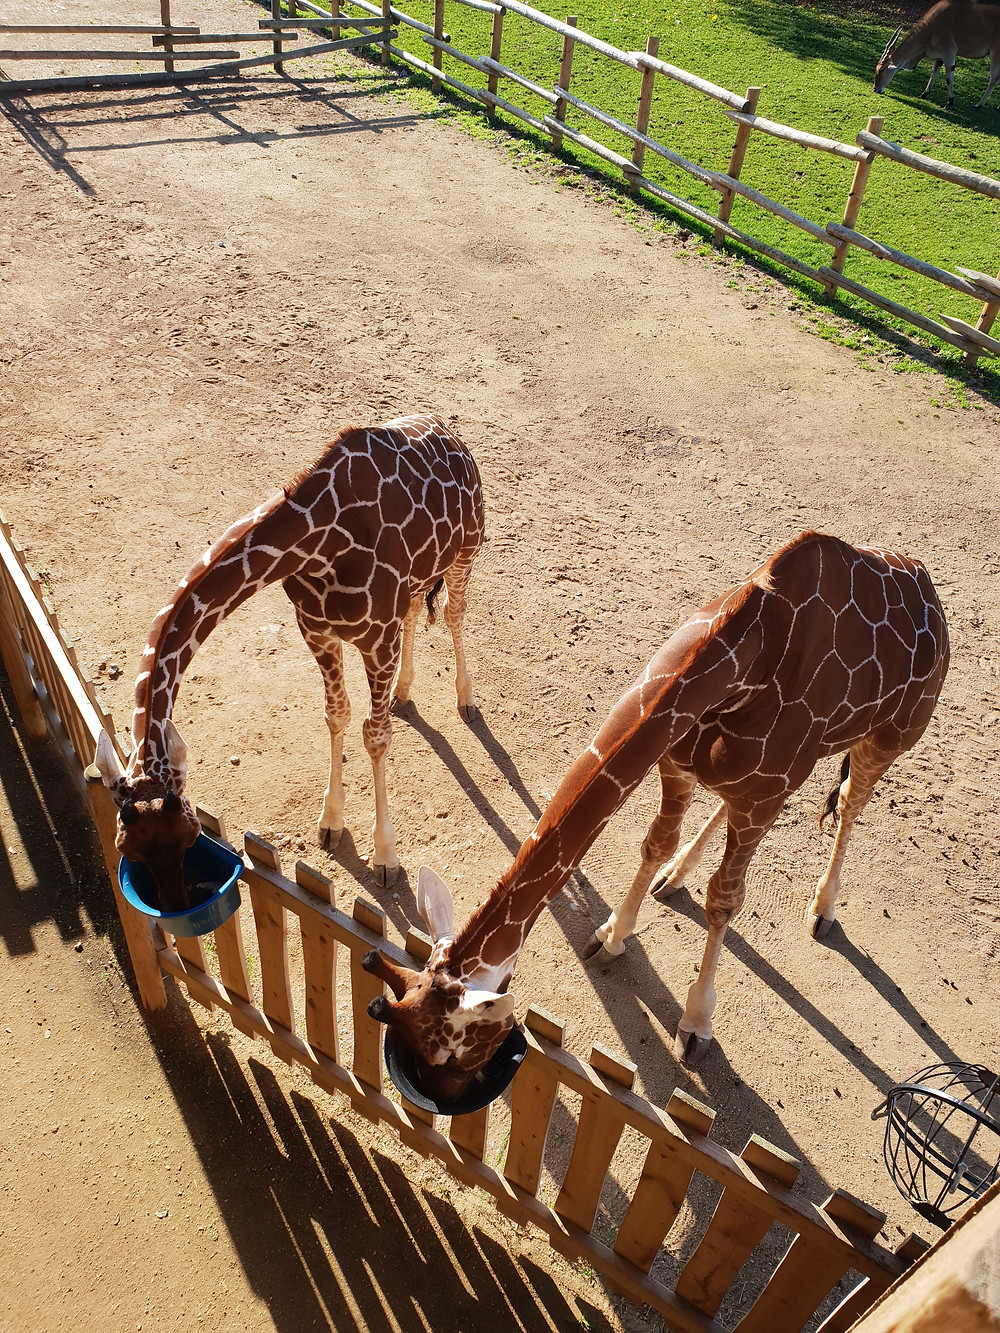 Two giraffes at The Wild Place